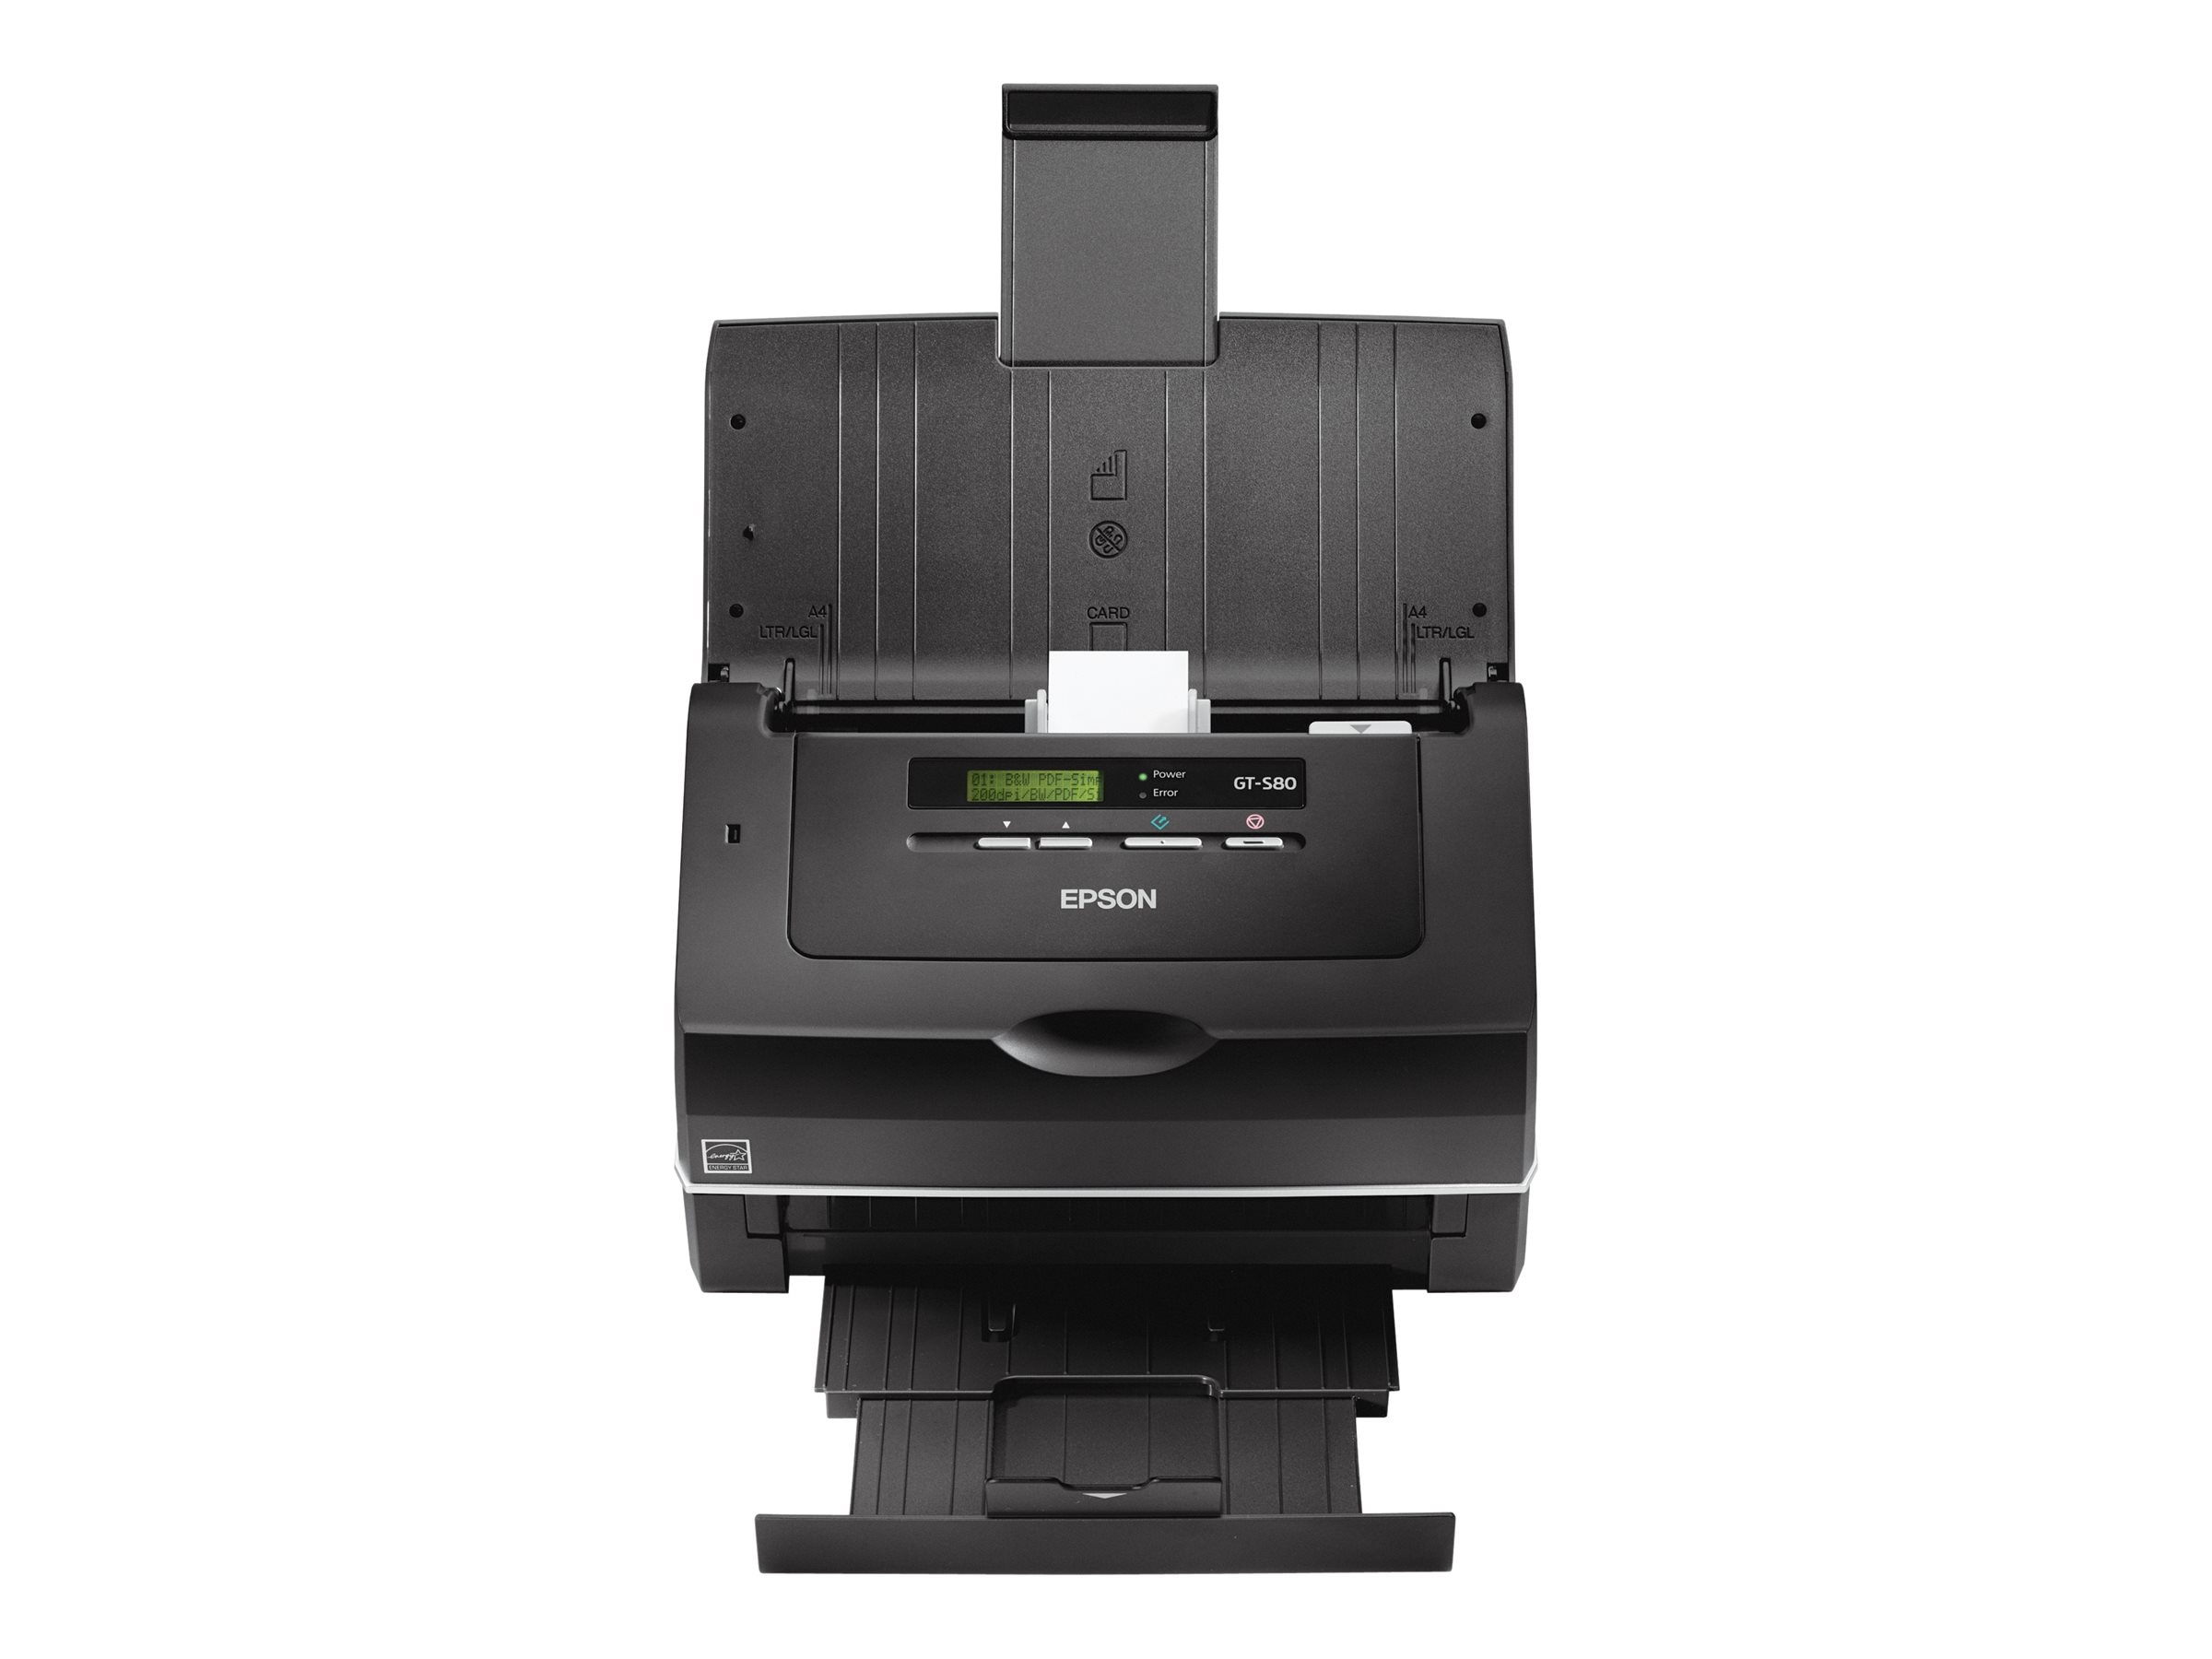 Epson WorkForce Pro GT-S80 Scanner - $799.99 less instant rebate of $62.00